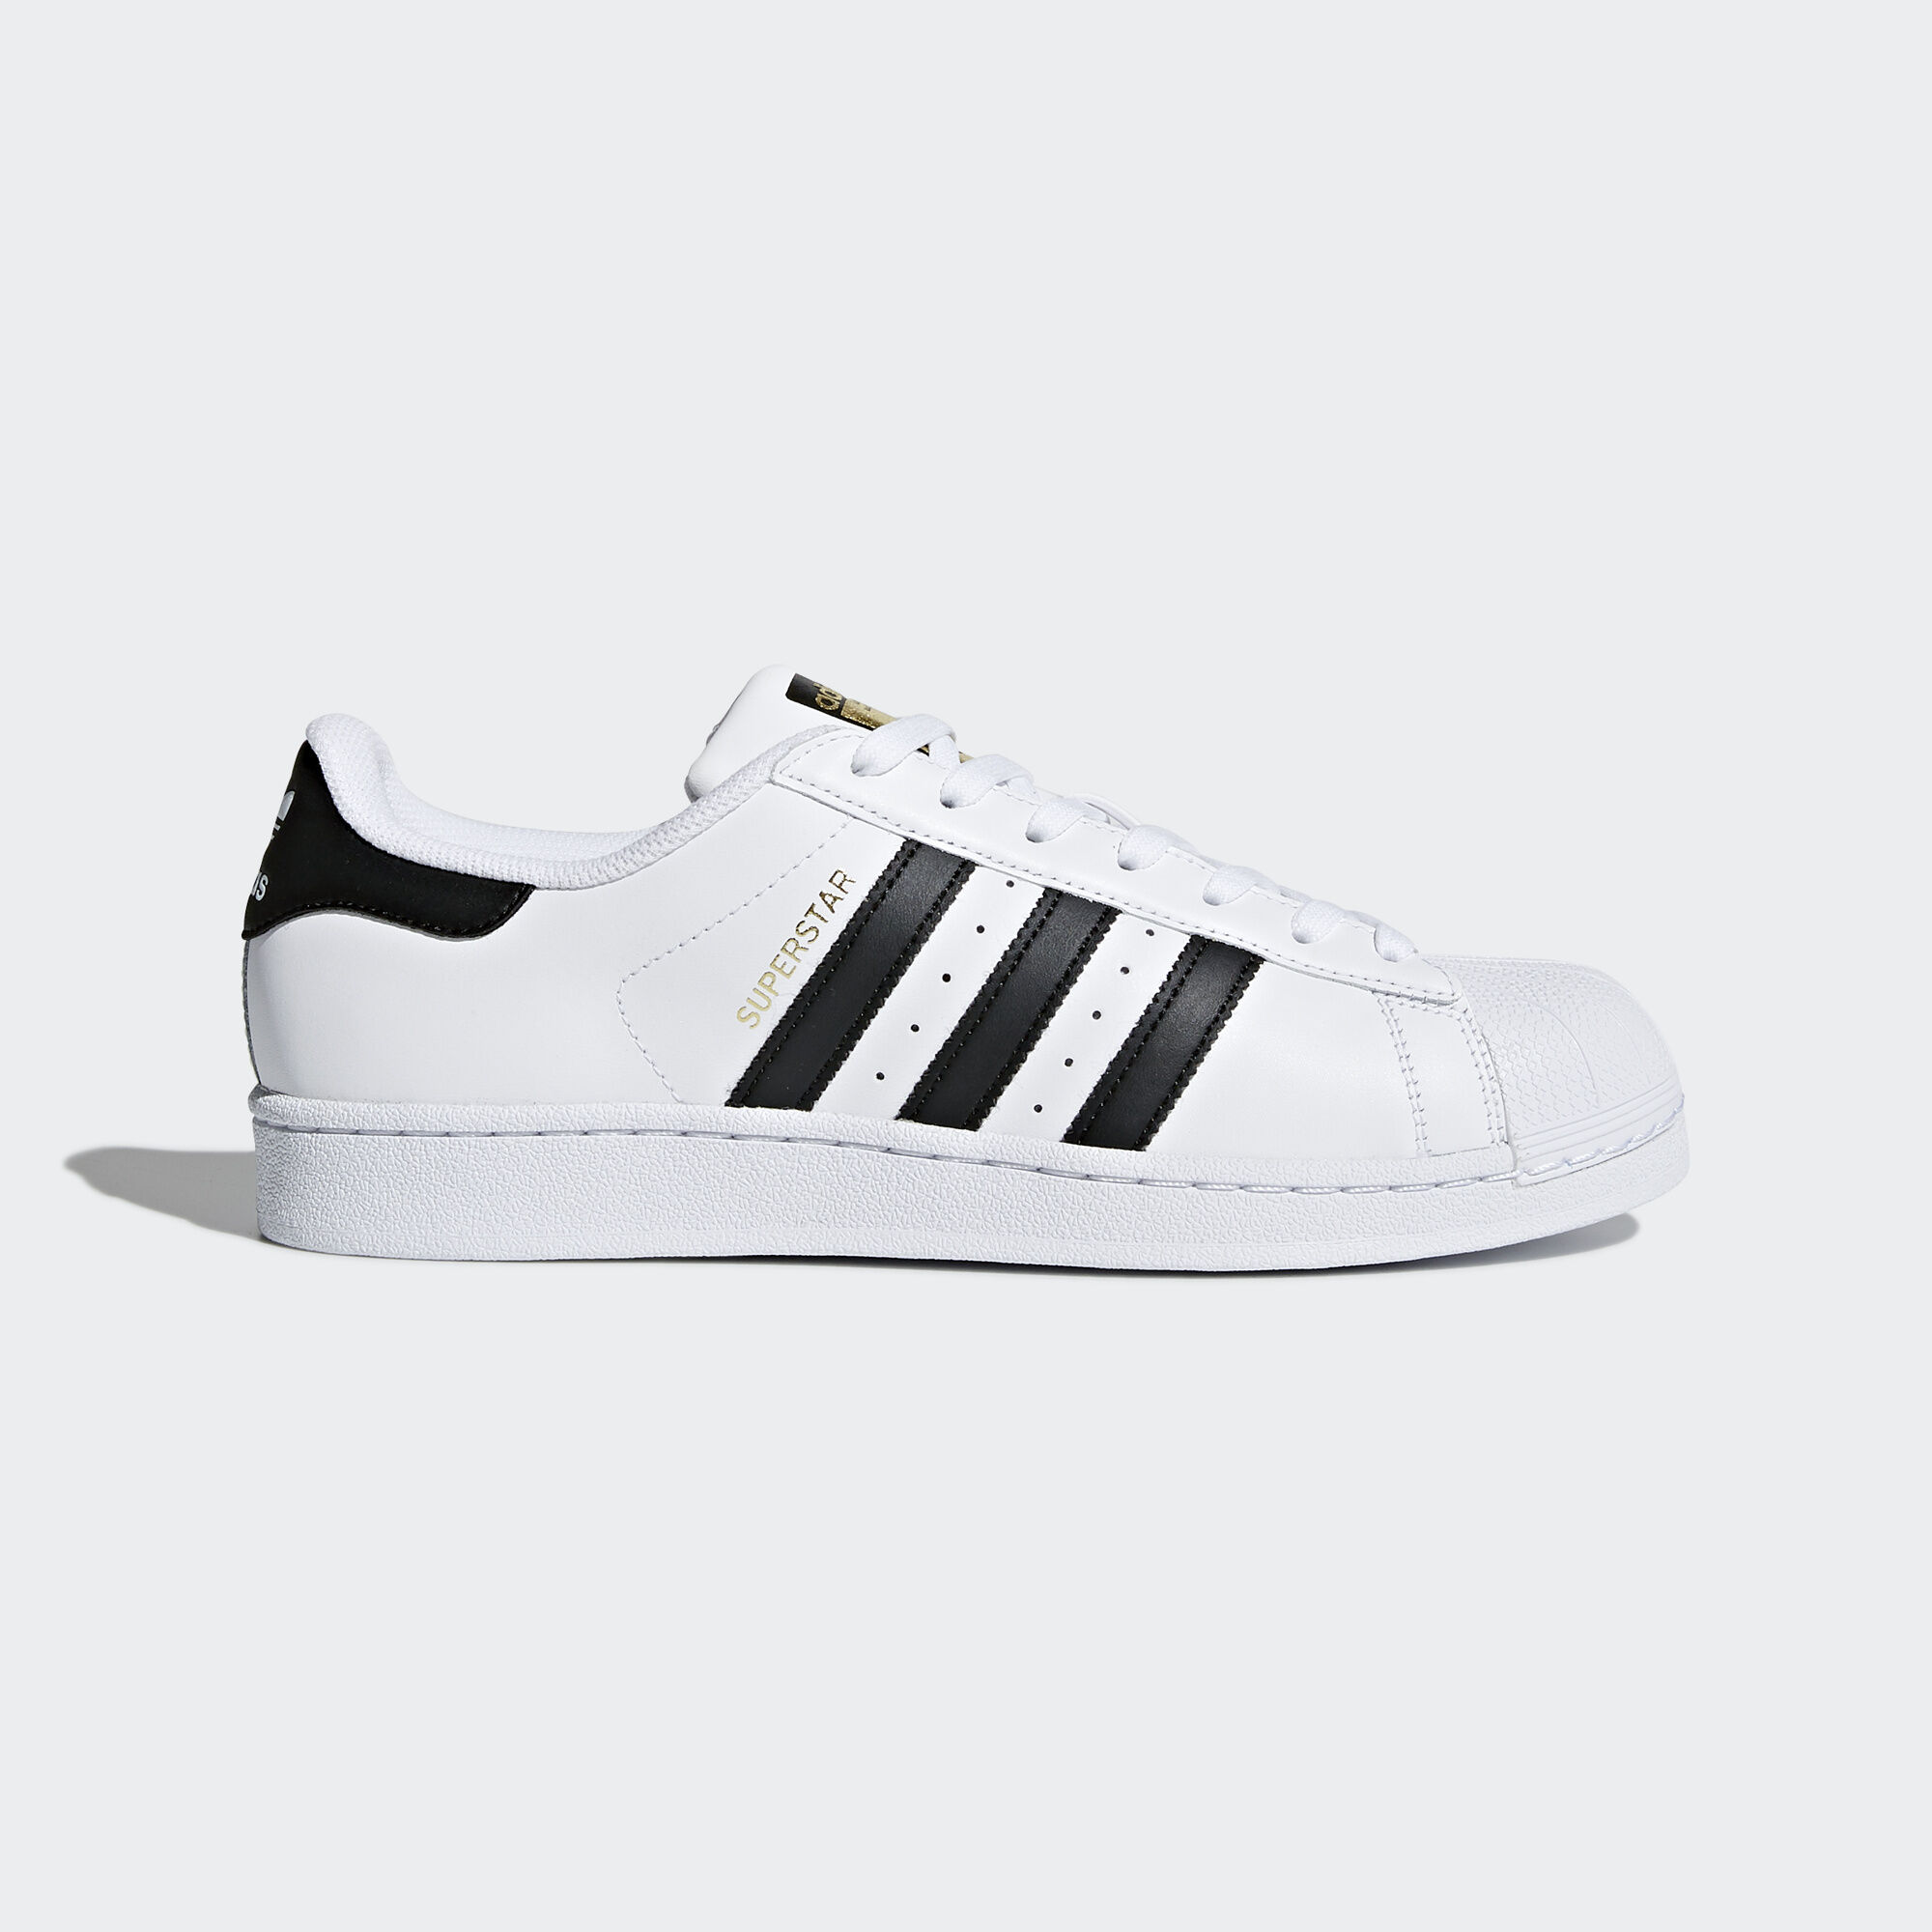 buy adidas slippers adidas official website india